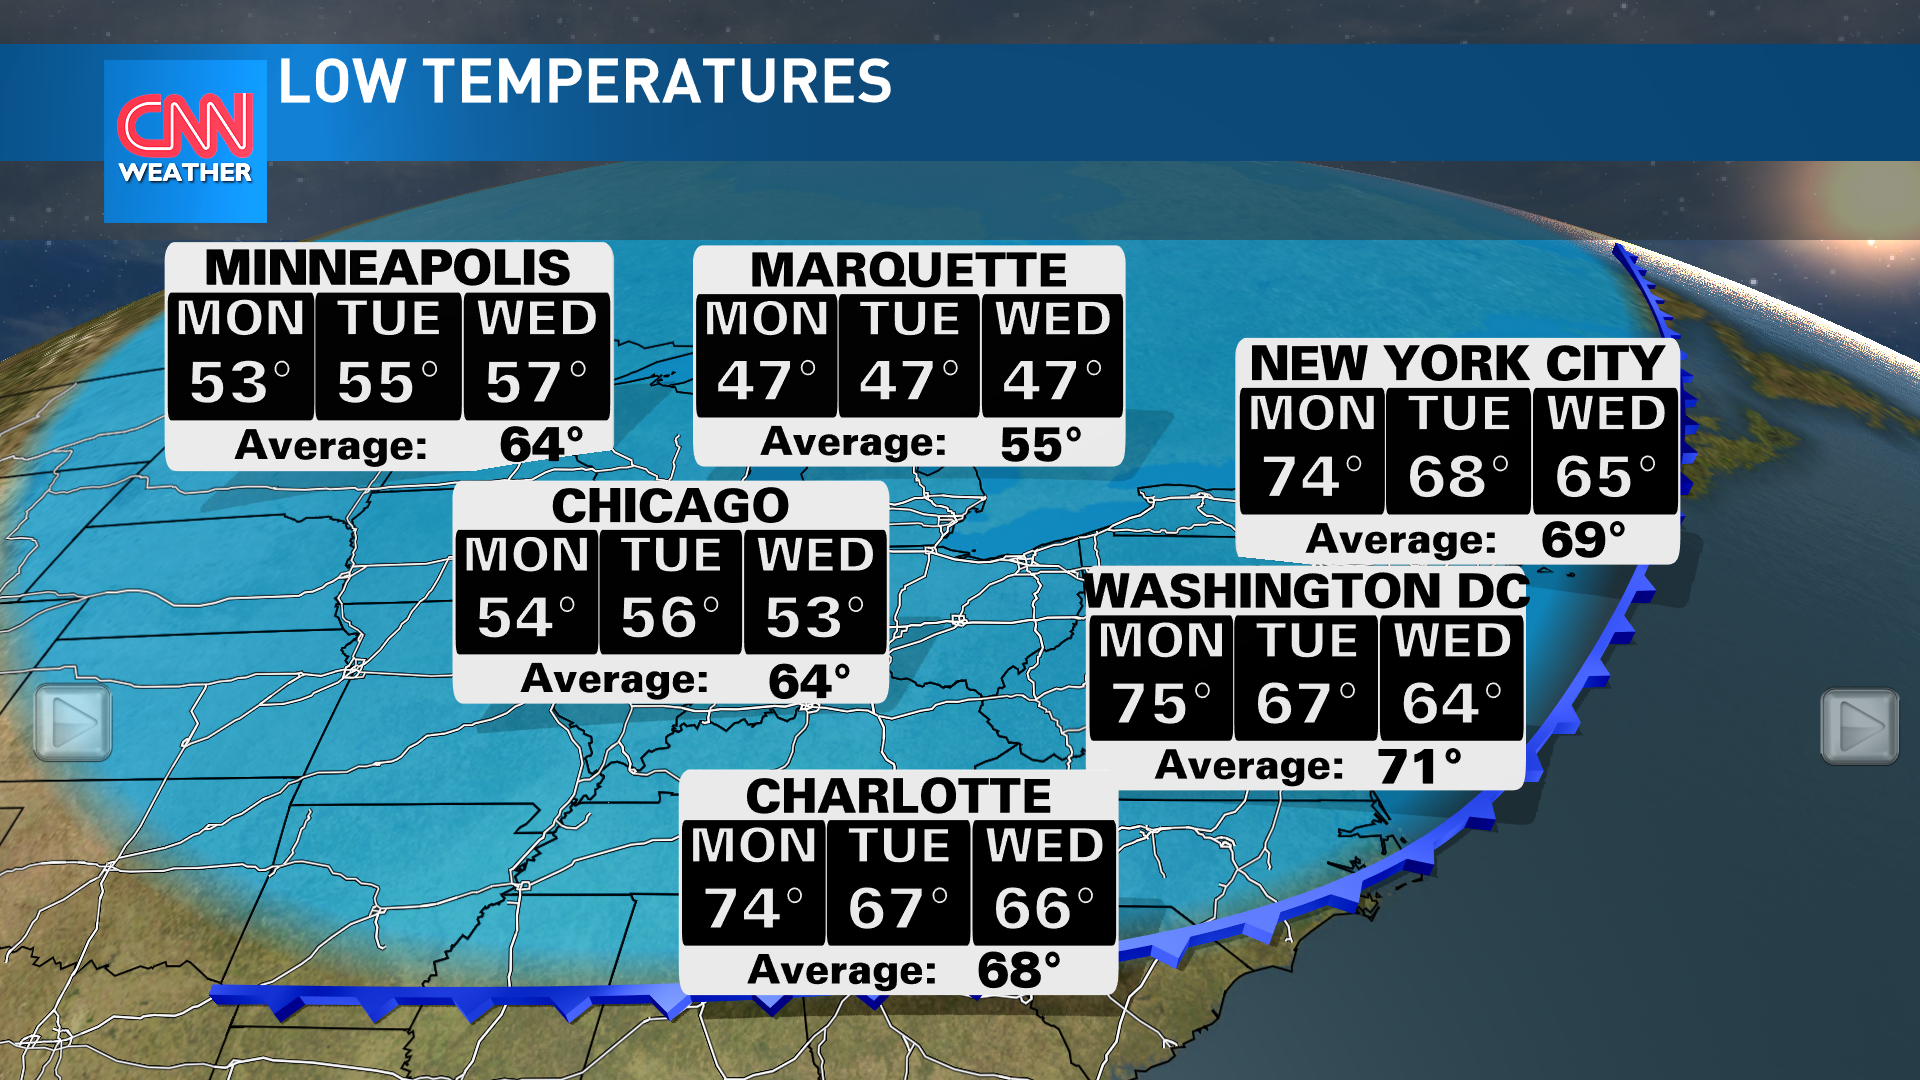 Check out the forecast of low temperatures for the start of the week. Image Credit: CNN Weather